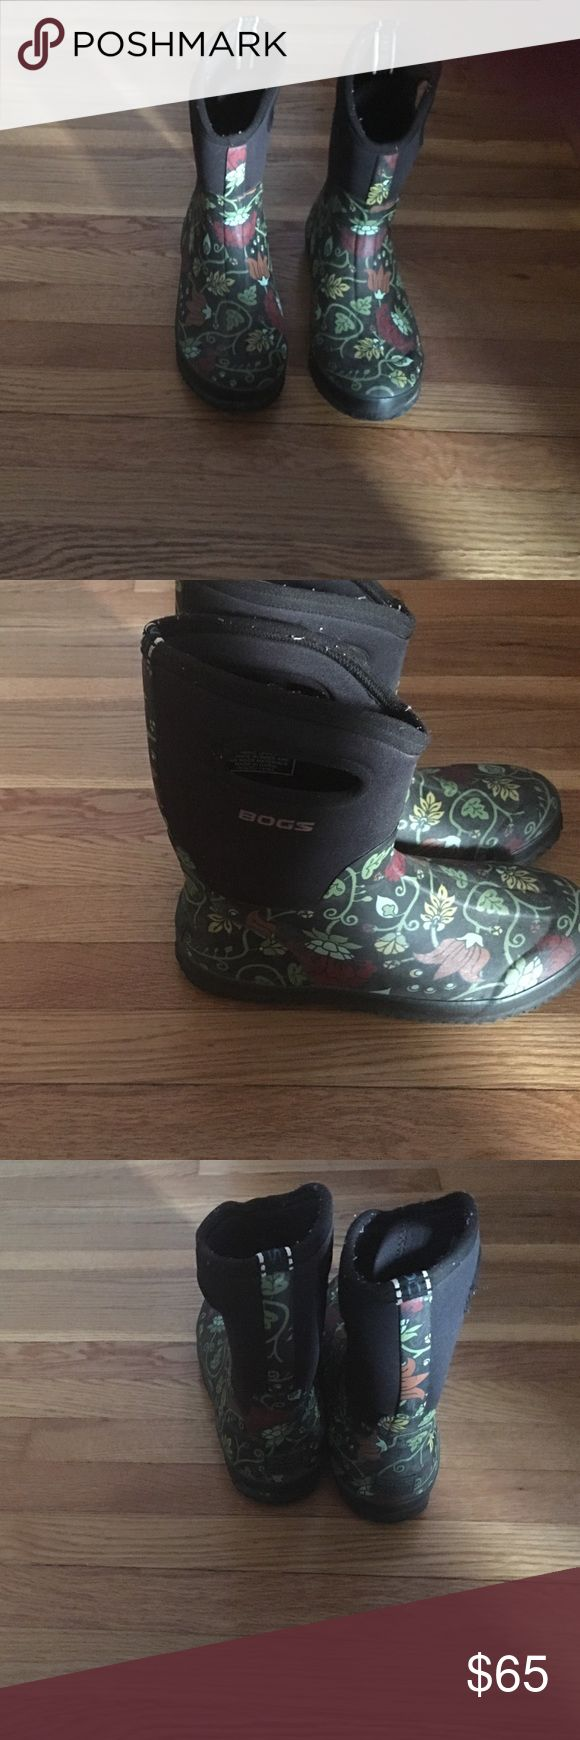 Bogs winter boots Super warm rubber with neoprene upper super easy on easy off. I just never use them I have hunters.has opening on sides for easy on off.floral design on bottom with black neoprene upper. Size 11 I wear a ten but needed the 11 they run small Bogs Shoes Winter & Rain Boots